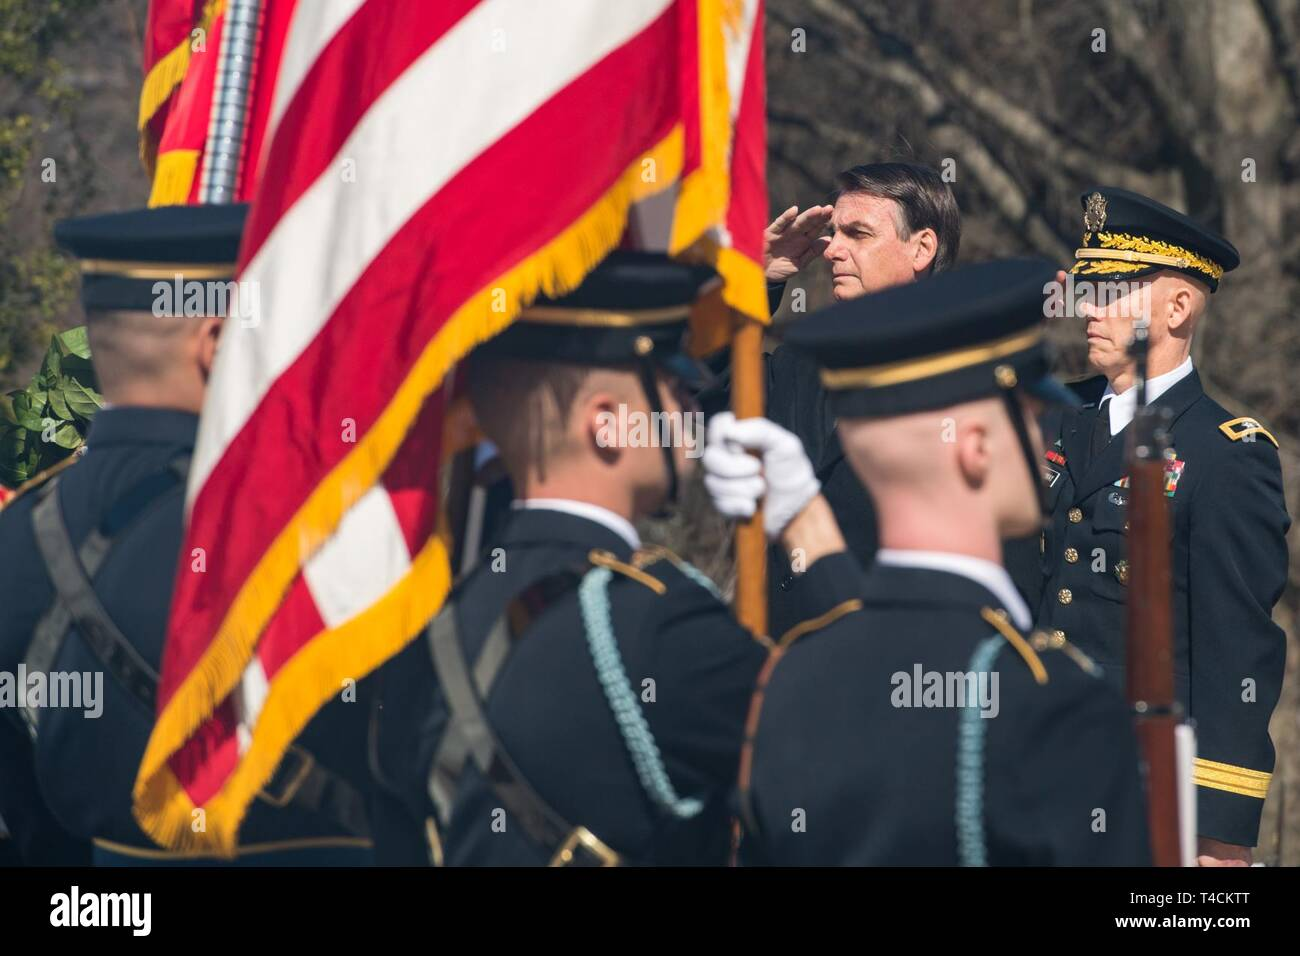 U.S. Army Maj. Gen. Joeseph R. Calloway, Director of Personnel Management Office of the Deputy Chief of Staff-G1, hosts an Armed Forces Full Honor Wreath-laying ceremony in honor of the President of Brazil, Jair Bolsonaro at Arlington National Cemetery, Arlington, Va., March 19, 2019. - Stock Image